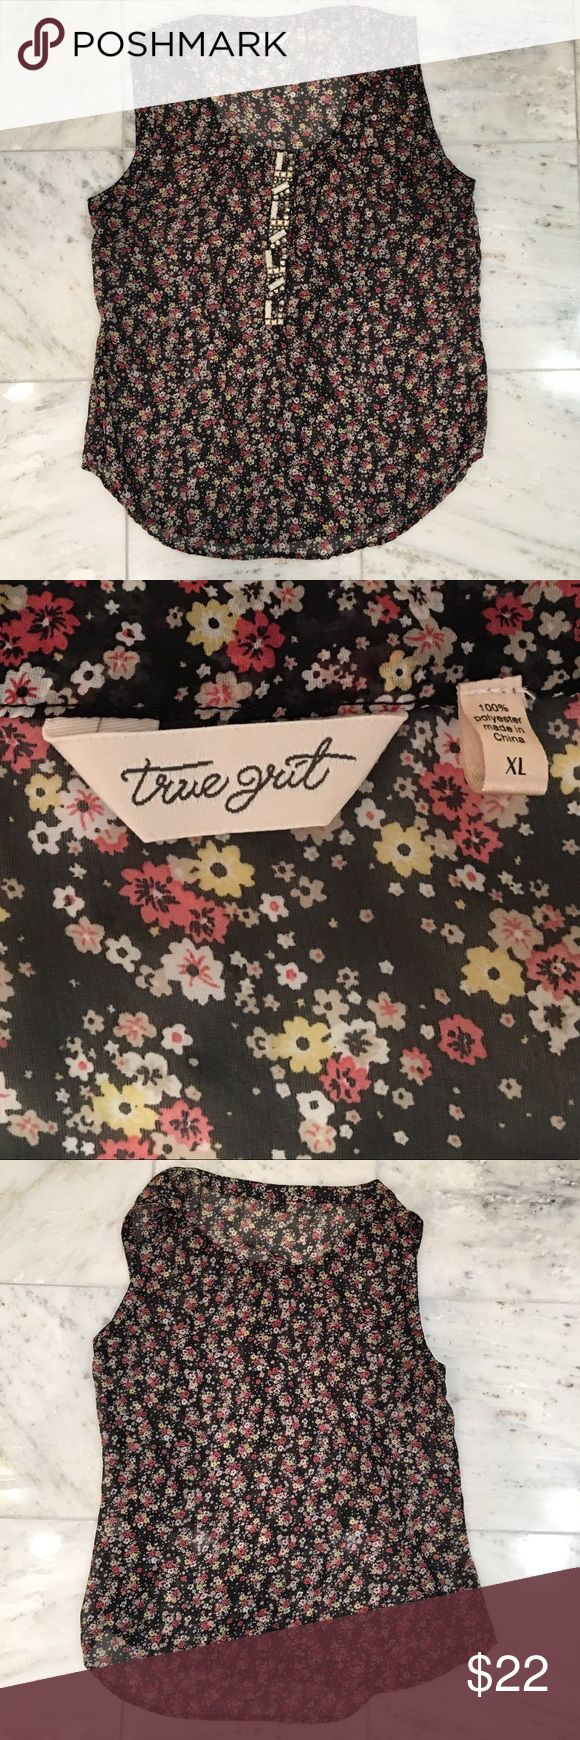 True Grit Sheer Floral Top w/ Rhinestones EUC Pretty sheer floral sleeveless top by True Grit. Has rhinestone/bead detailing in the front. Purchased at Von Maur and worn once. Looks cute dressed up with a blazer, or dressed down under a jean jacket or leather jacket. True Grit Tops